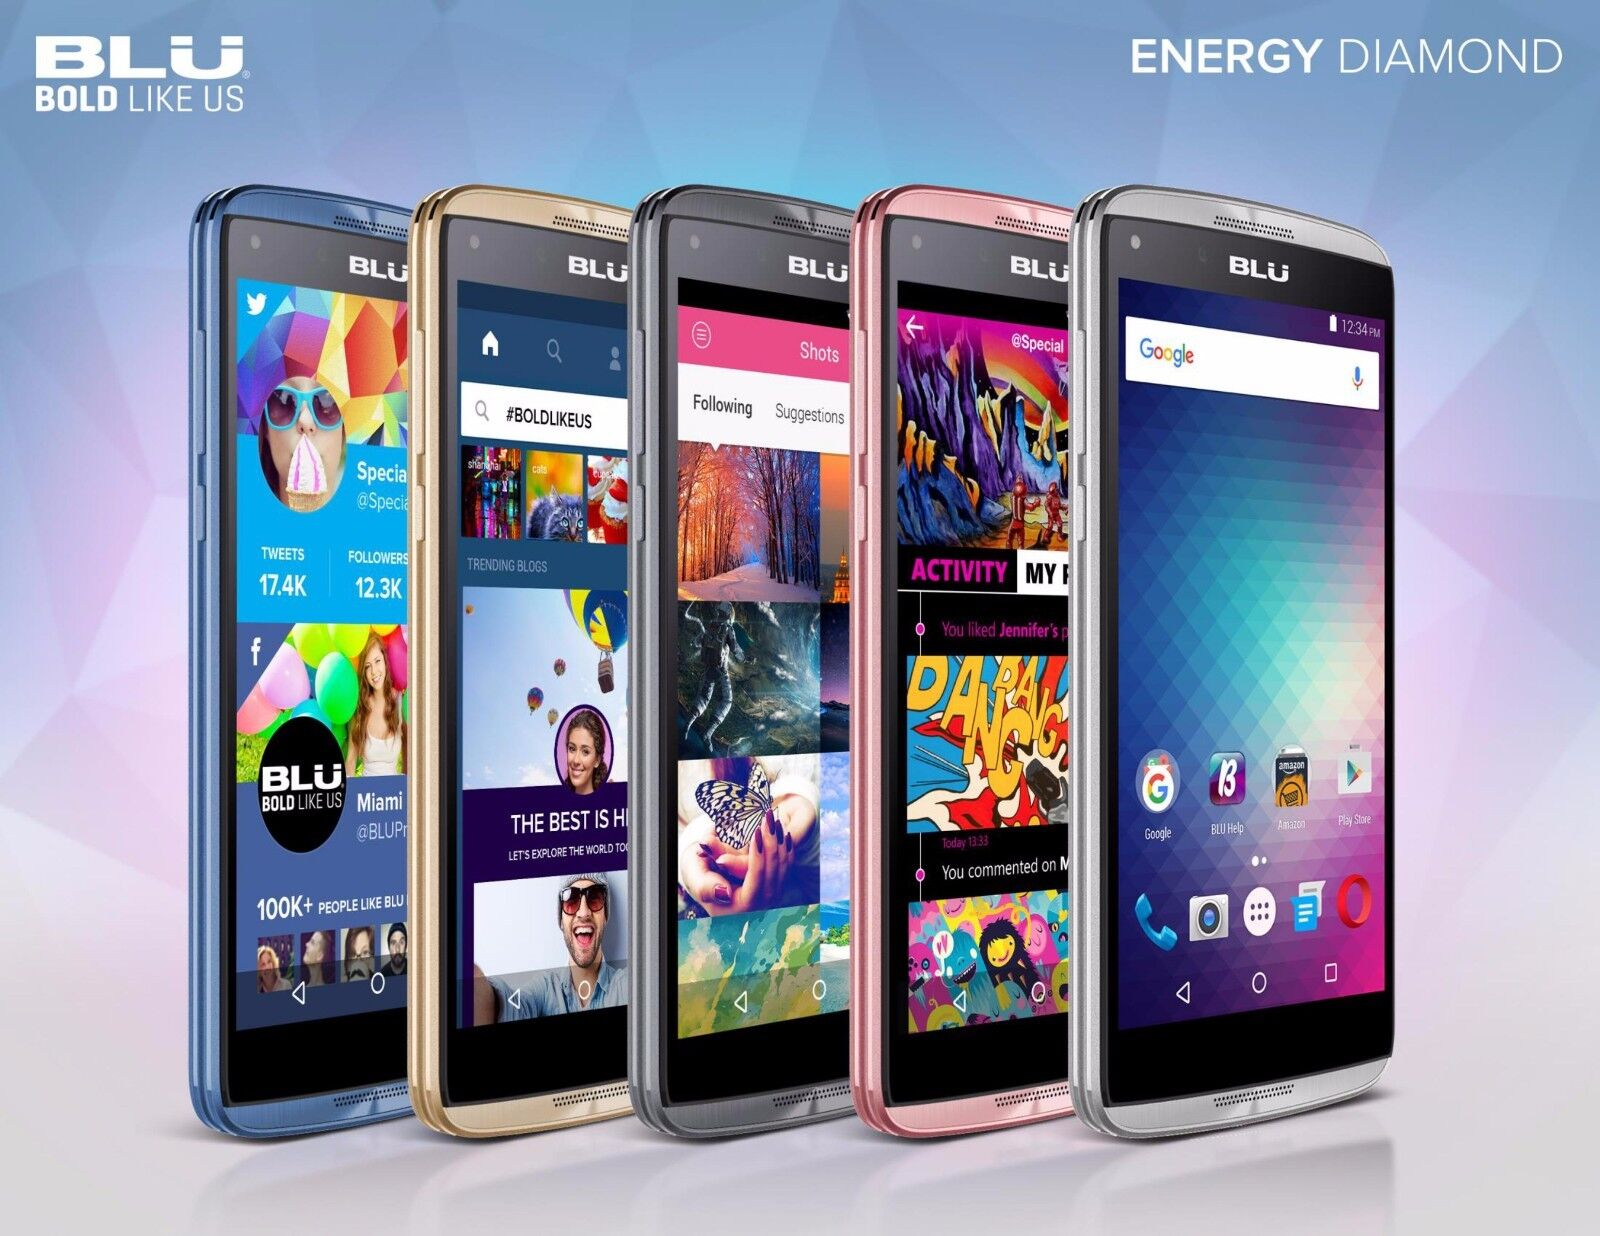 NEW UNLOCKED ANDROID SMARTPHONE  GSM DUAL SIM  CELL PHONE -BLU ENERGY DIAMOND MINI